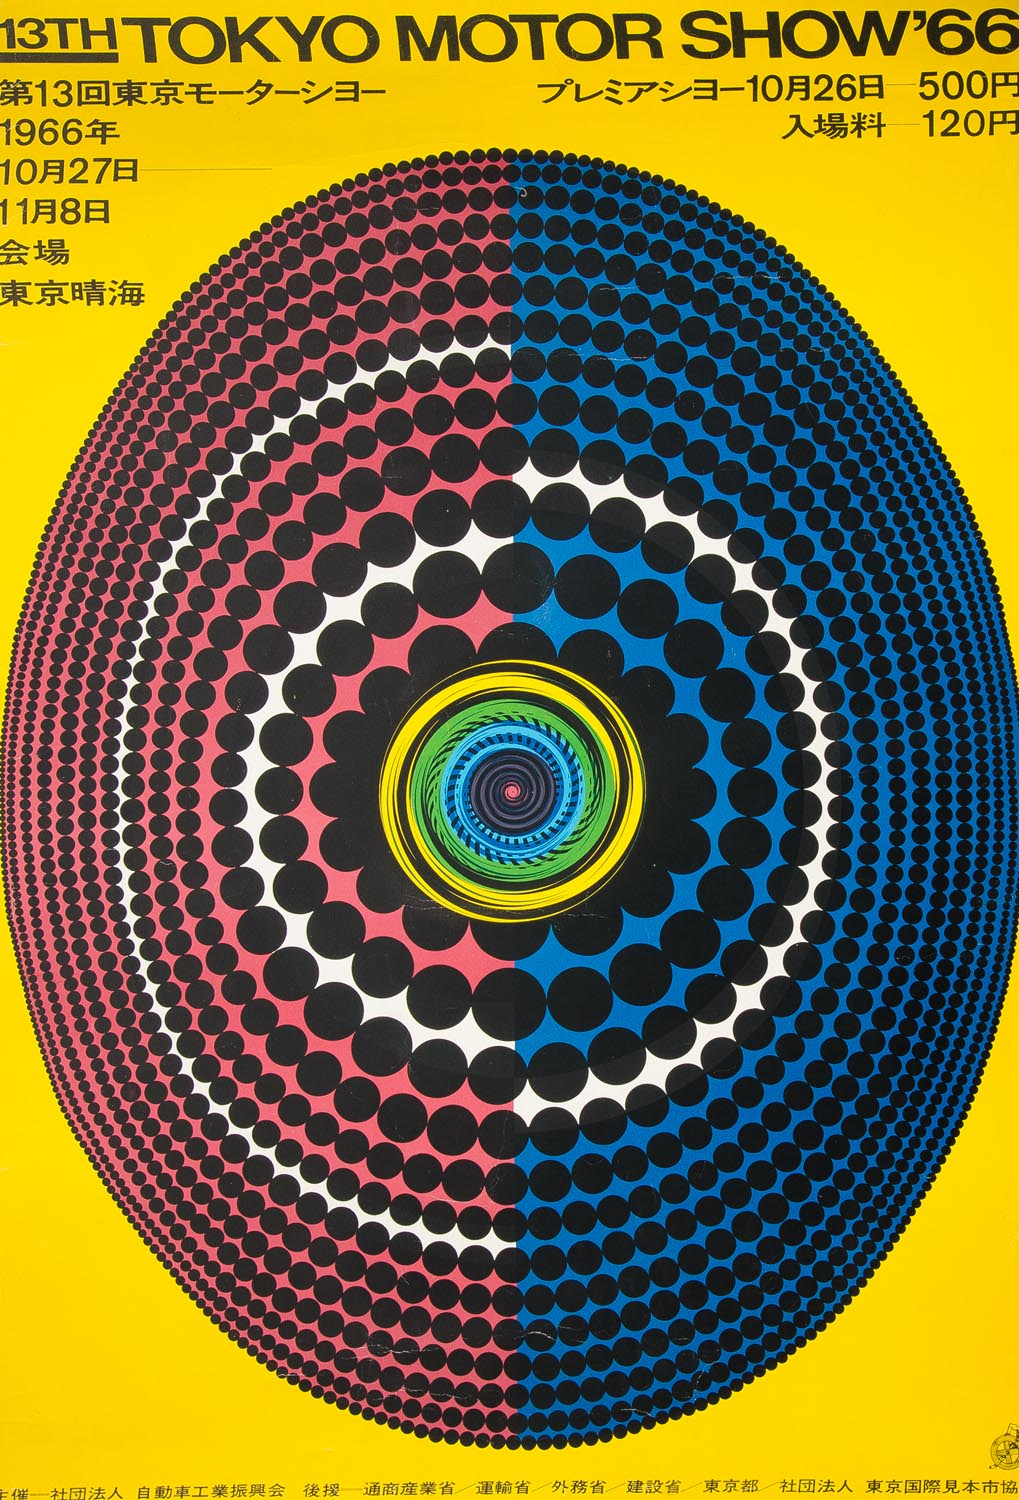 Lot 326 - PSYCHEDELIA: A psychedelic styled poster advertising the 13th Tokyo Motor Show 1966, linen backed,